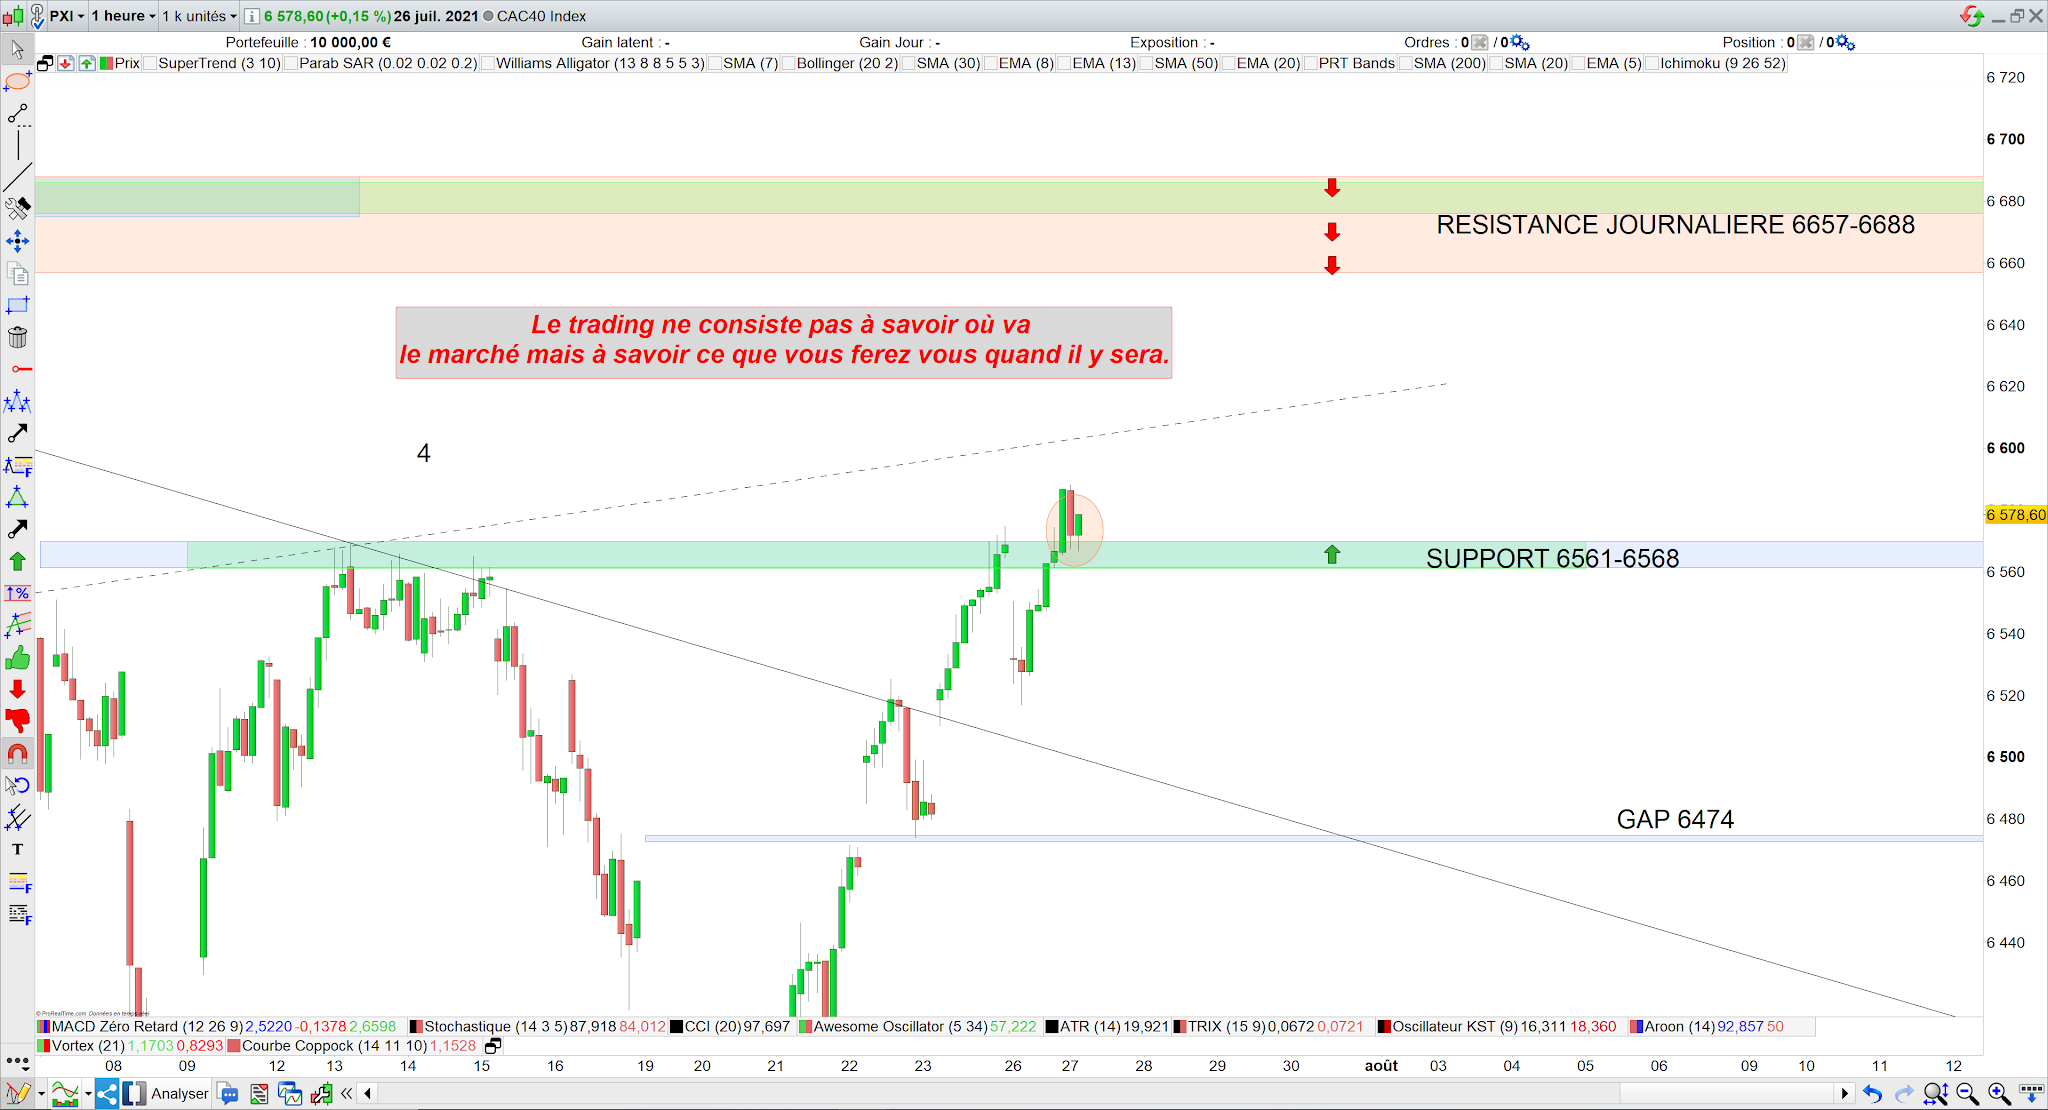 Trading CAC40 27/07/21